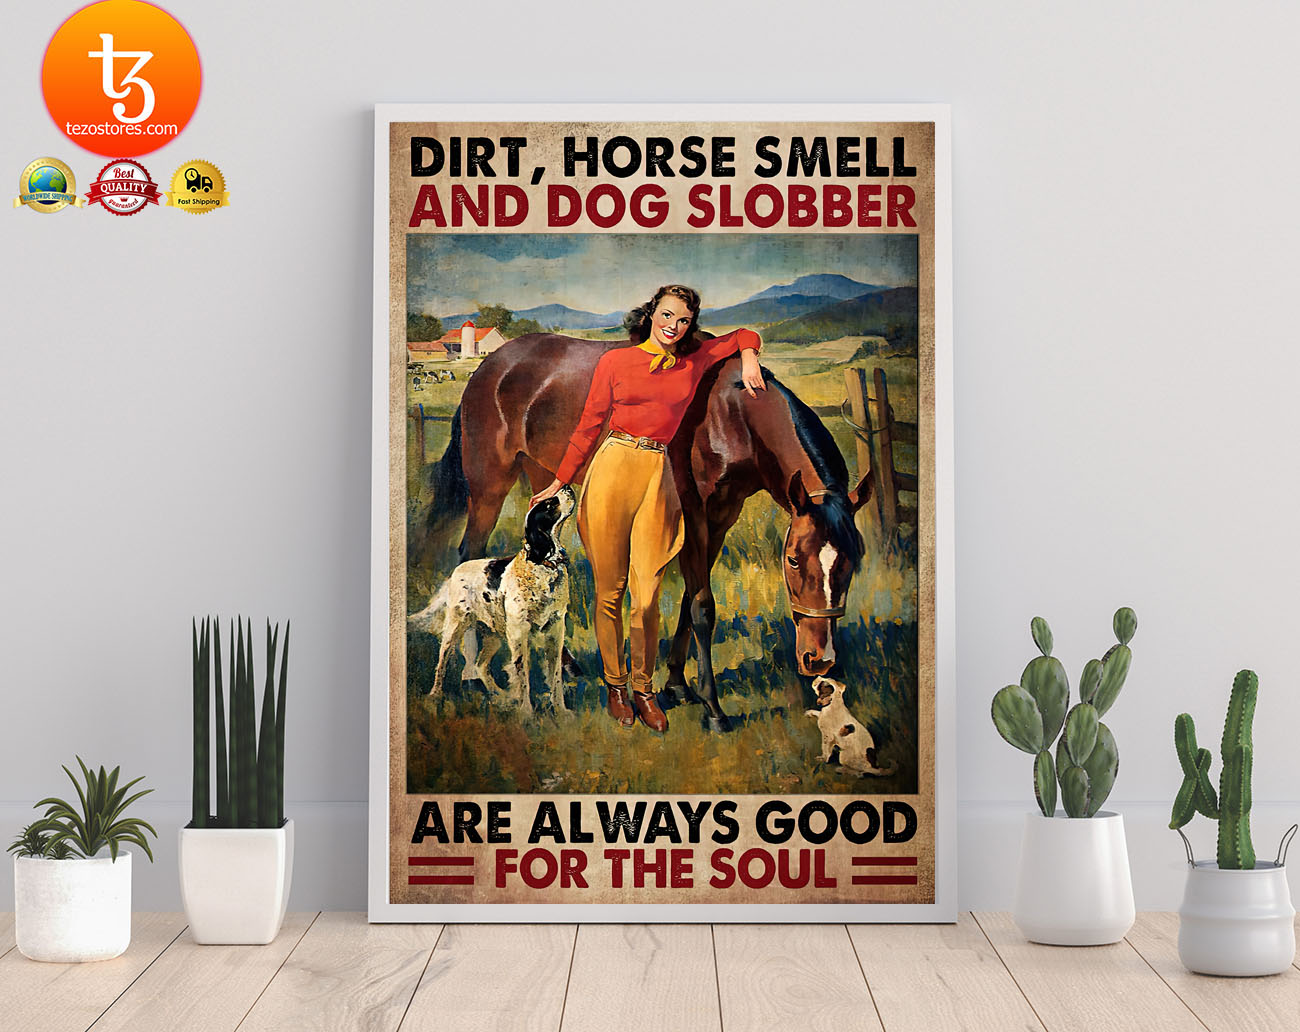 Dirt horse smell and dog slobber are always good for the soul poster2